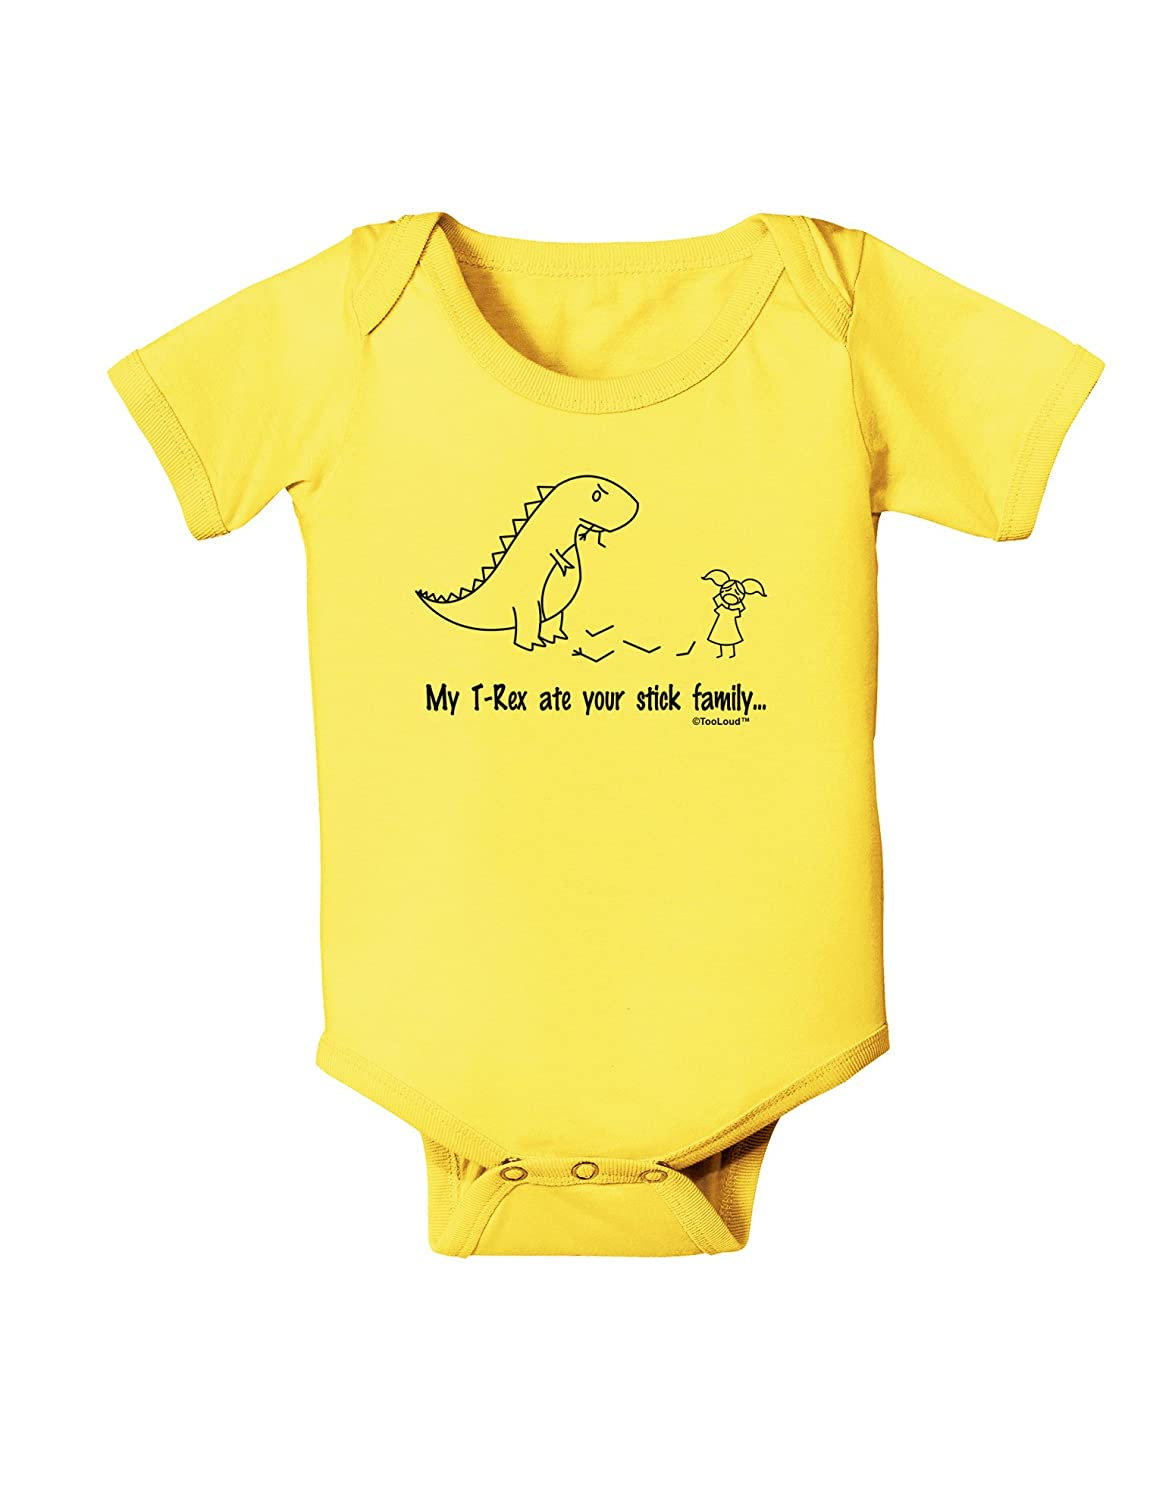 TooLoud My T-Rex Ate Your Stick Family Line Baby Romper Bodysuit